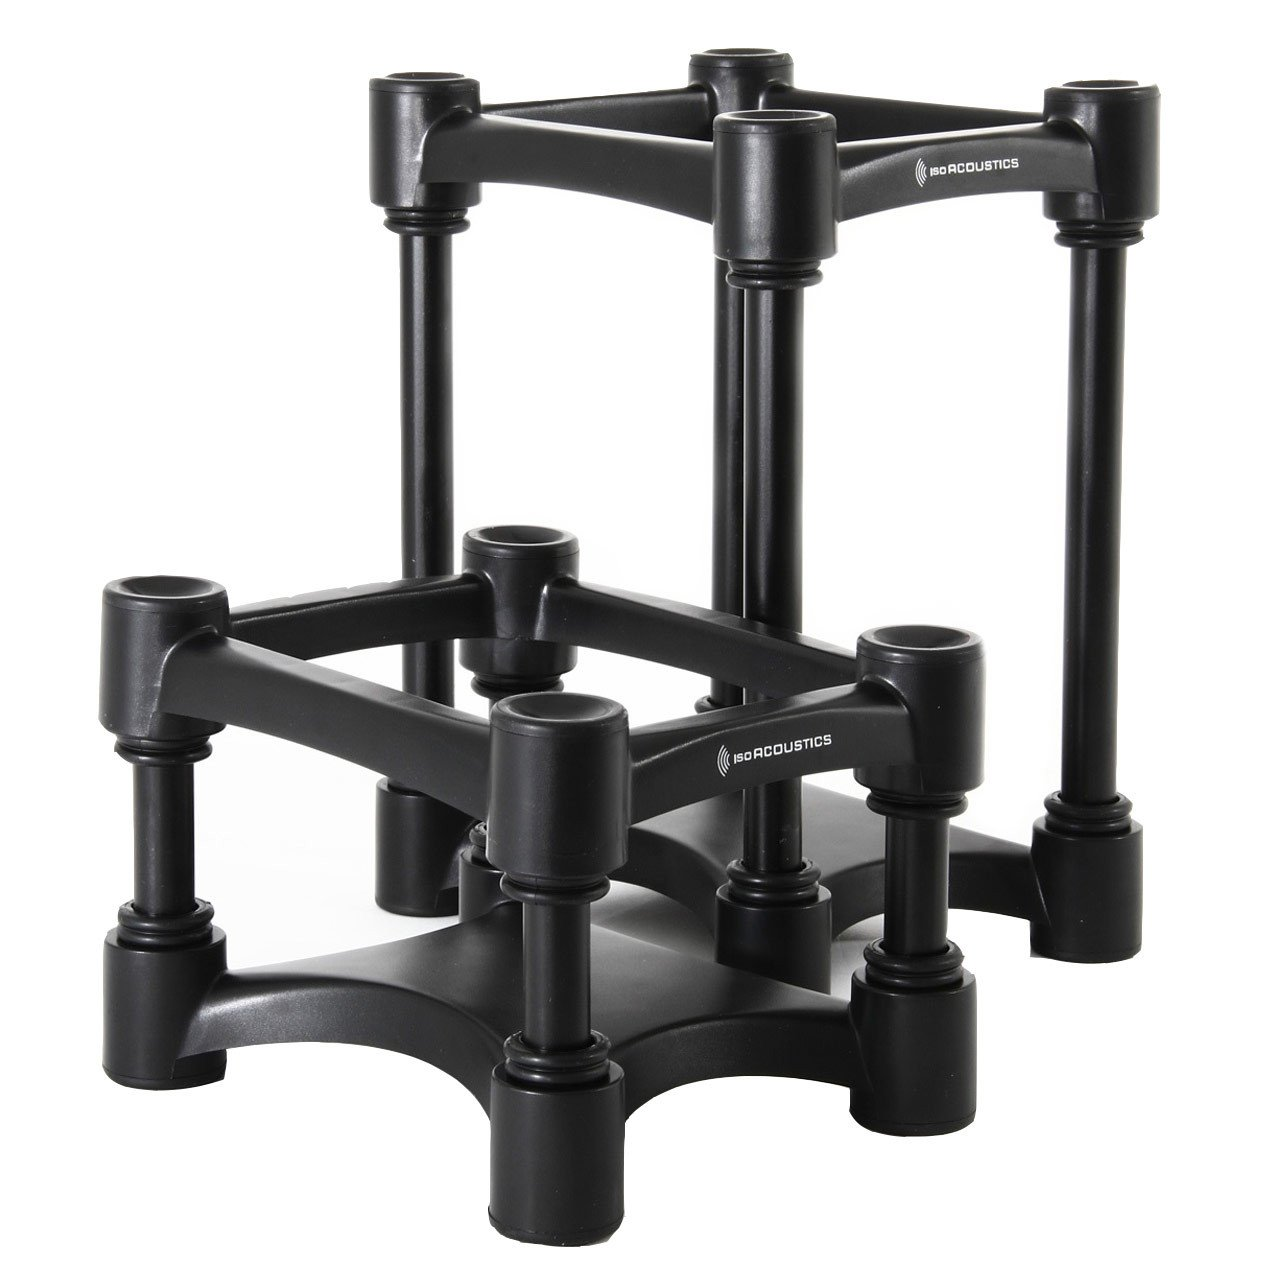 Monitor Isolation - IsoACOUSTICS ISO-L8R130 Adjustable Desktop Speaker Stands PAIR